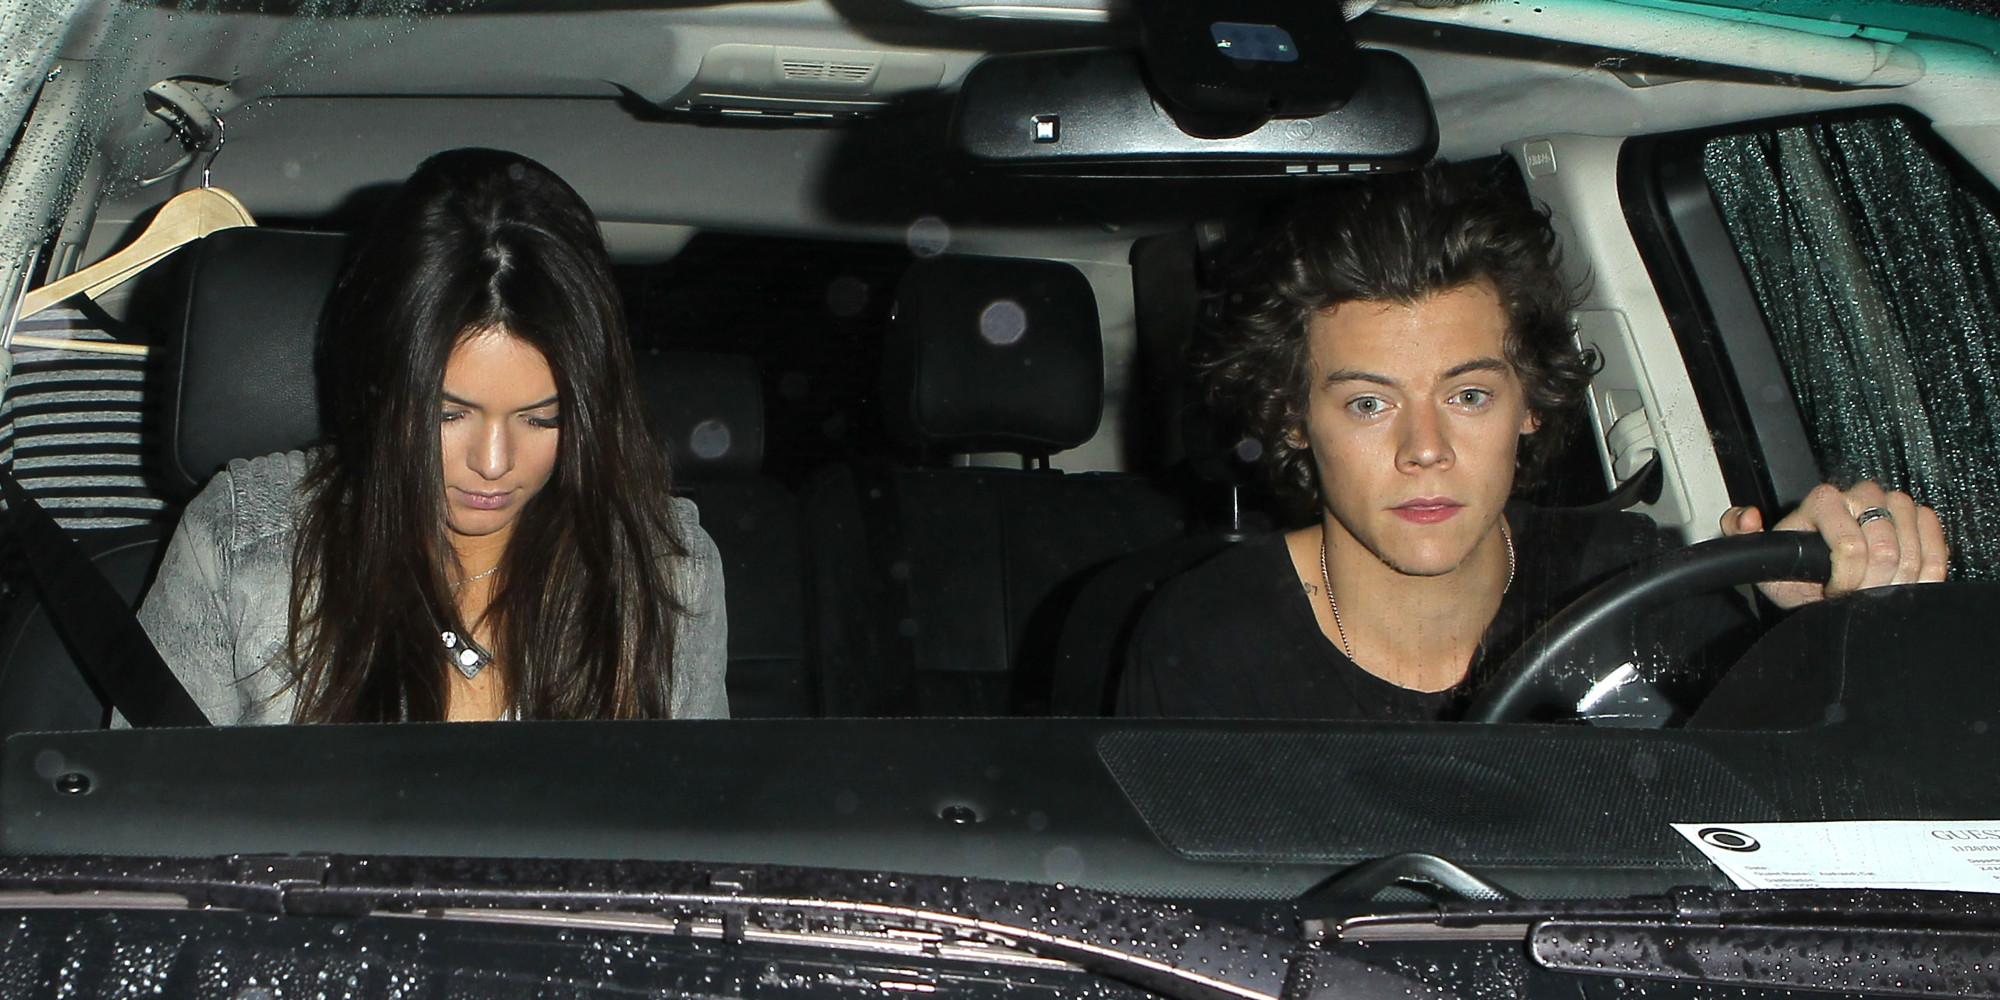 kendall not dating harry styles Set the internet to status: melt khloe kardashian has weighed in on the kendall jenner and harry styles romance speculation currently dominating the internet, saying.